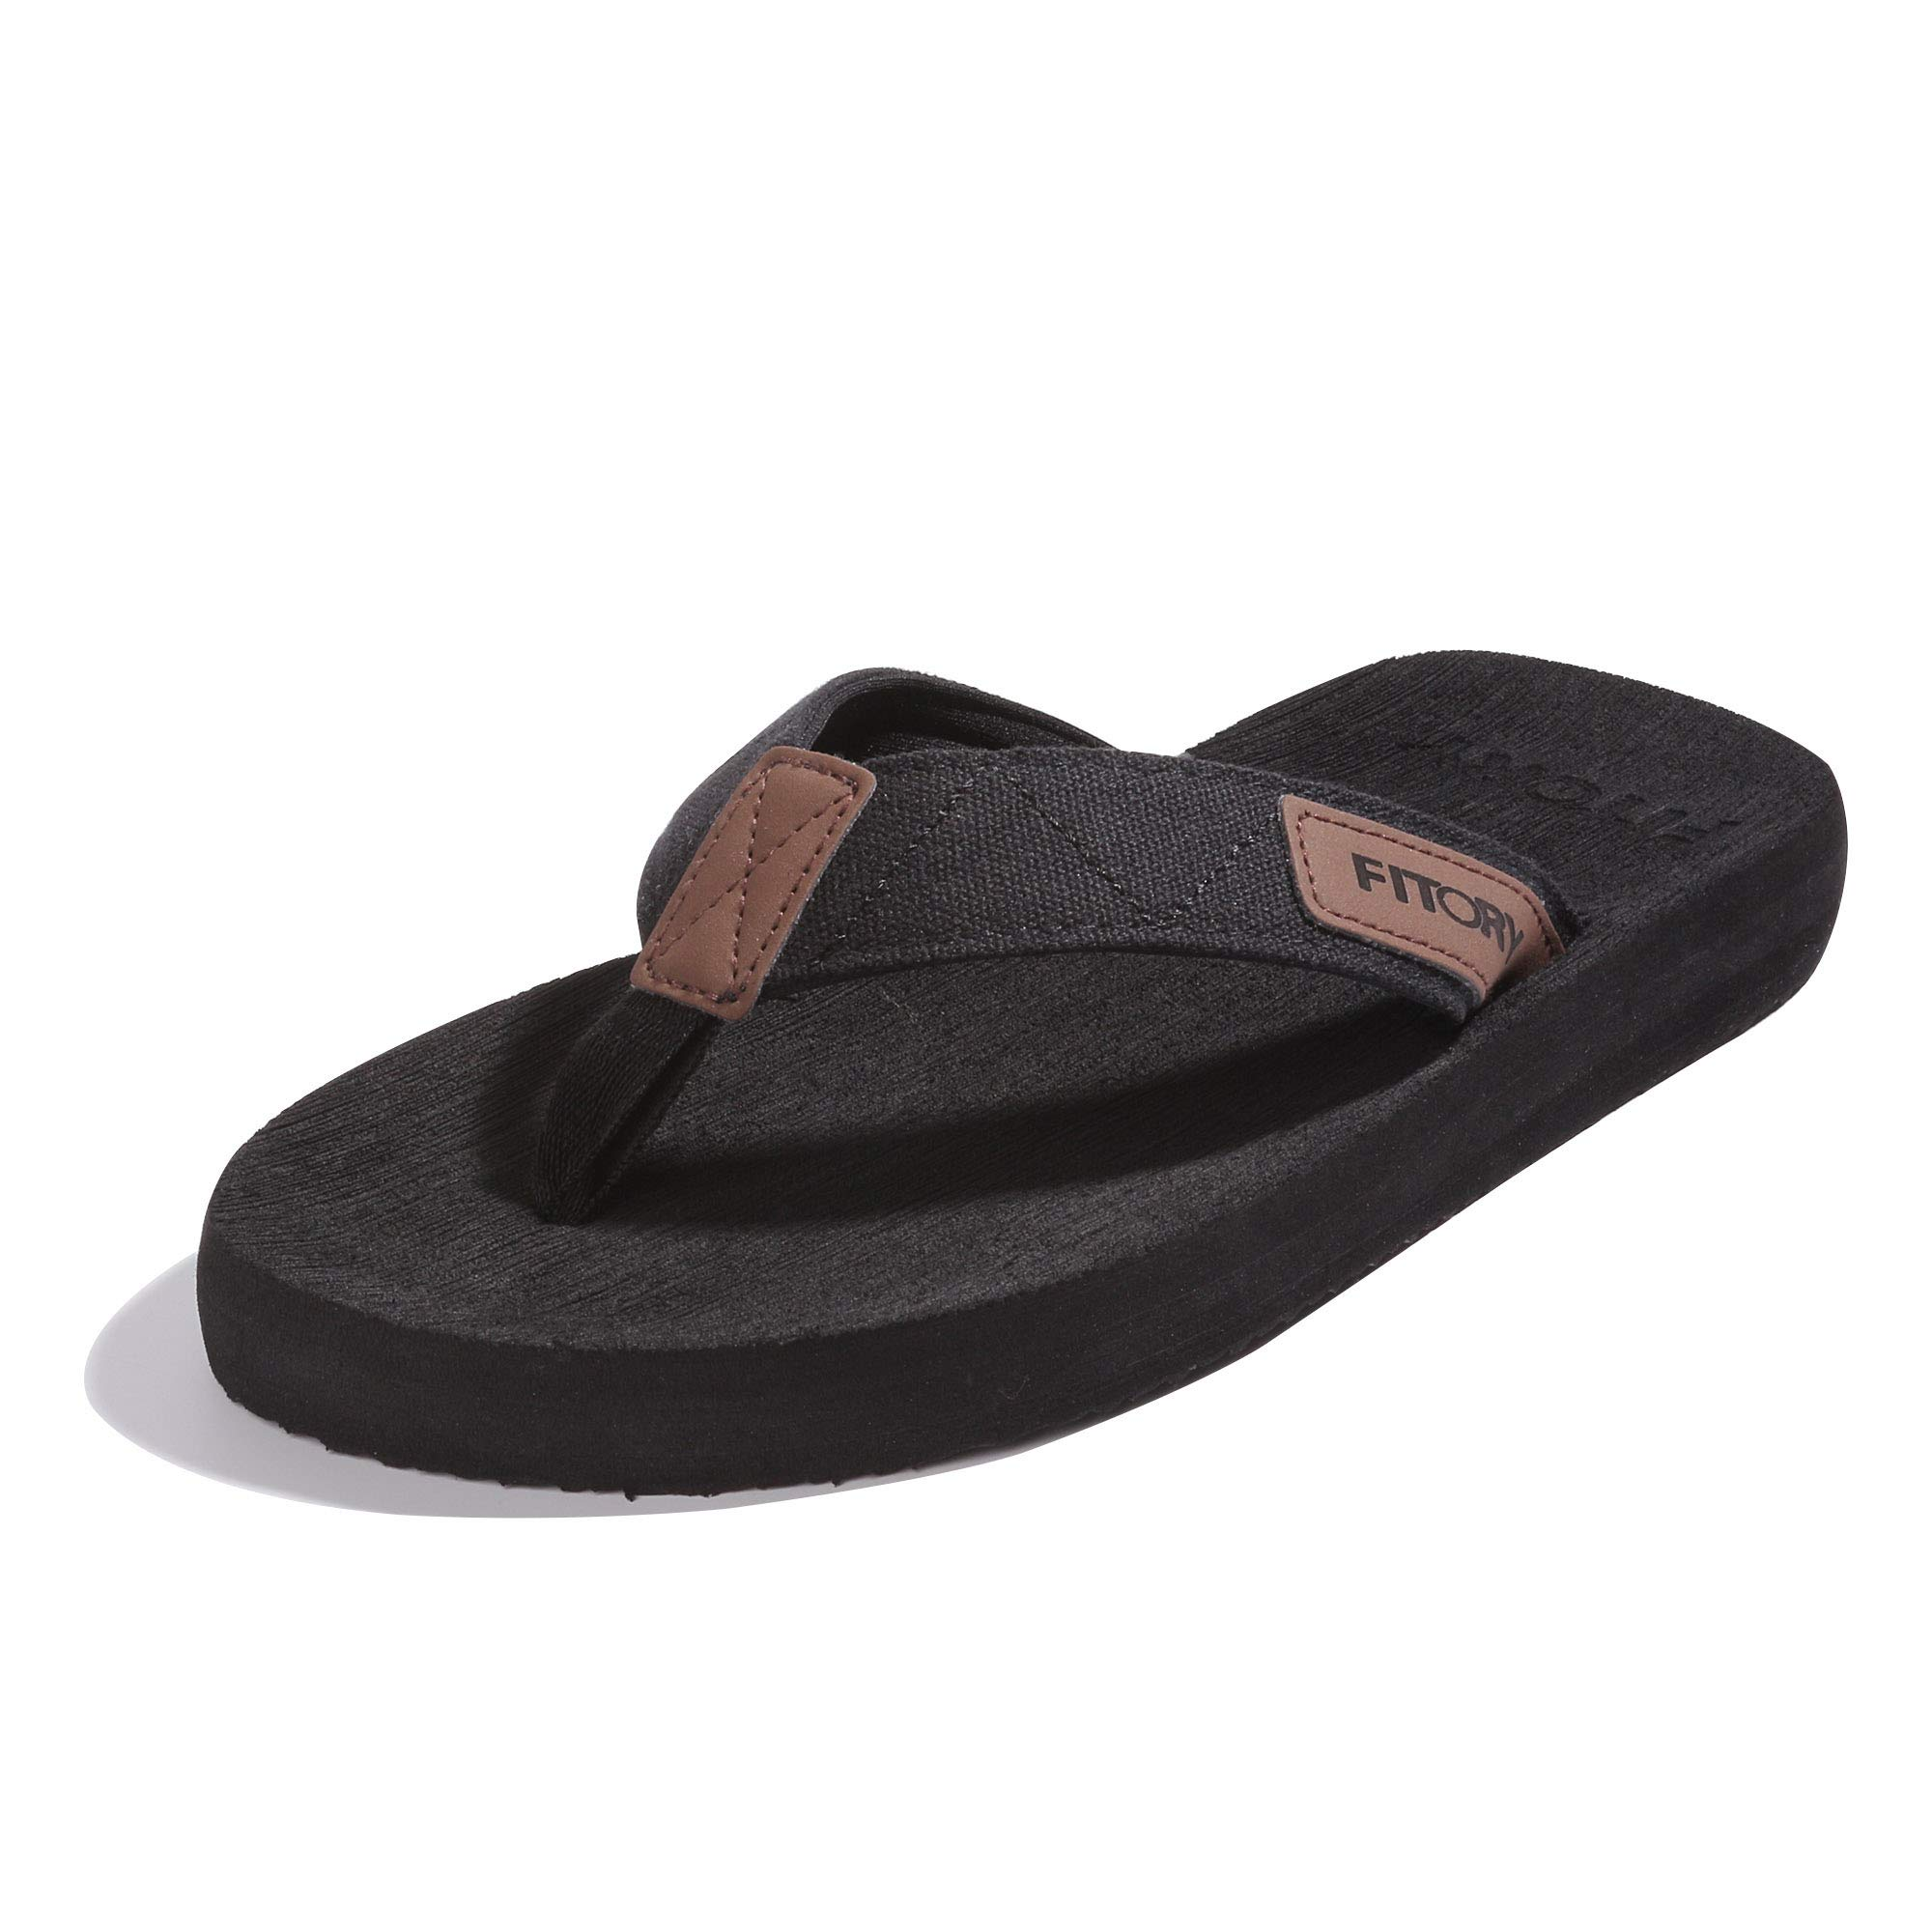 FITORY Men's Flip-Flops, Arch Support Thongs Comfort Slippers for Beach Size 7-13